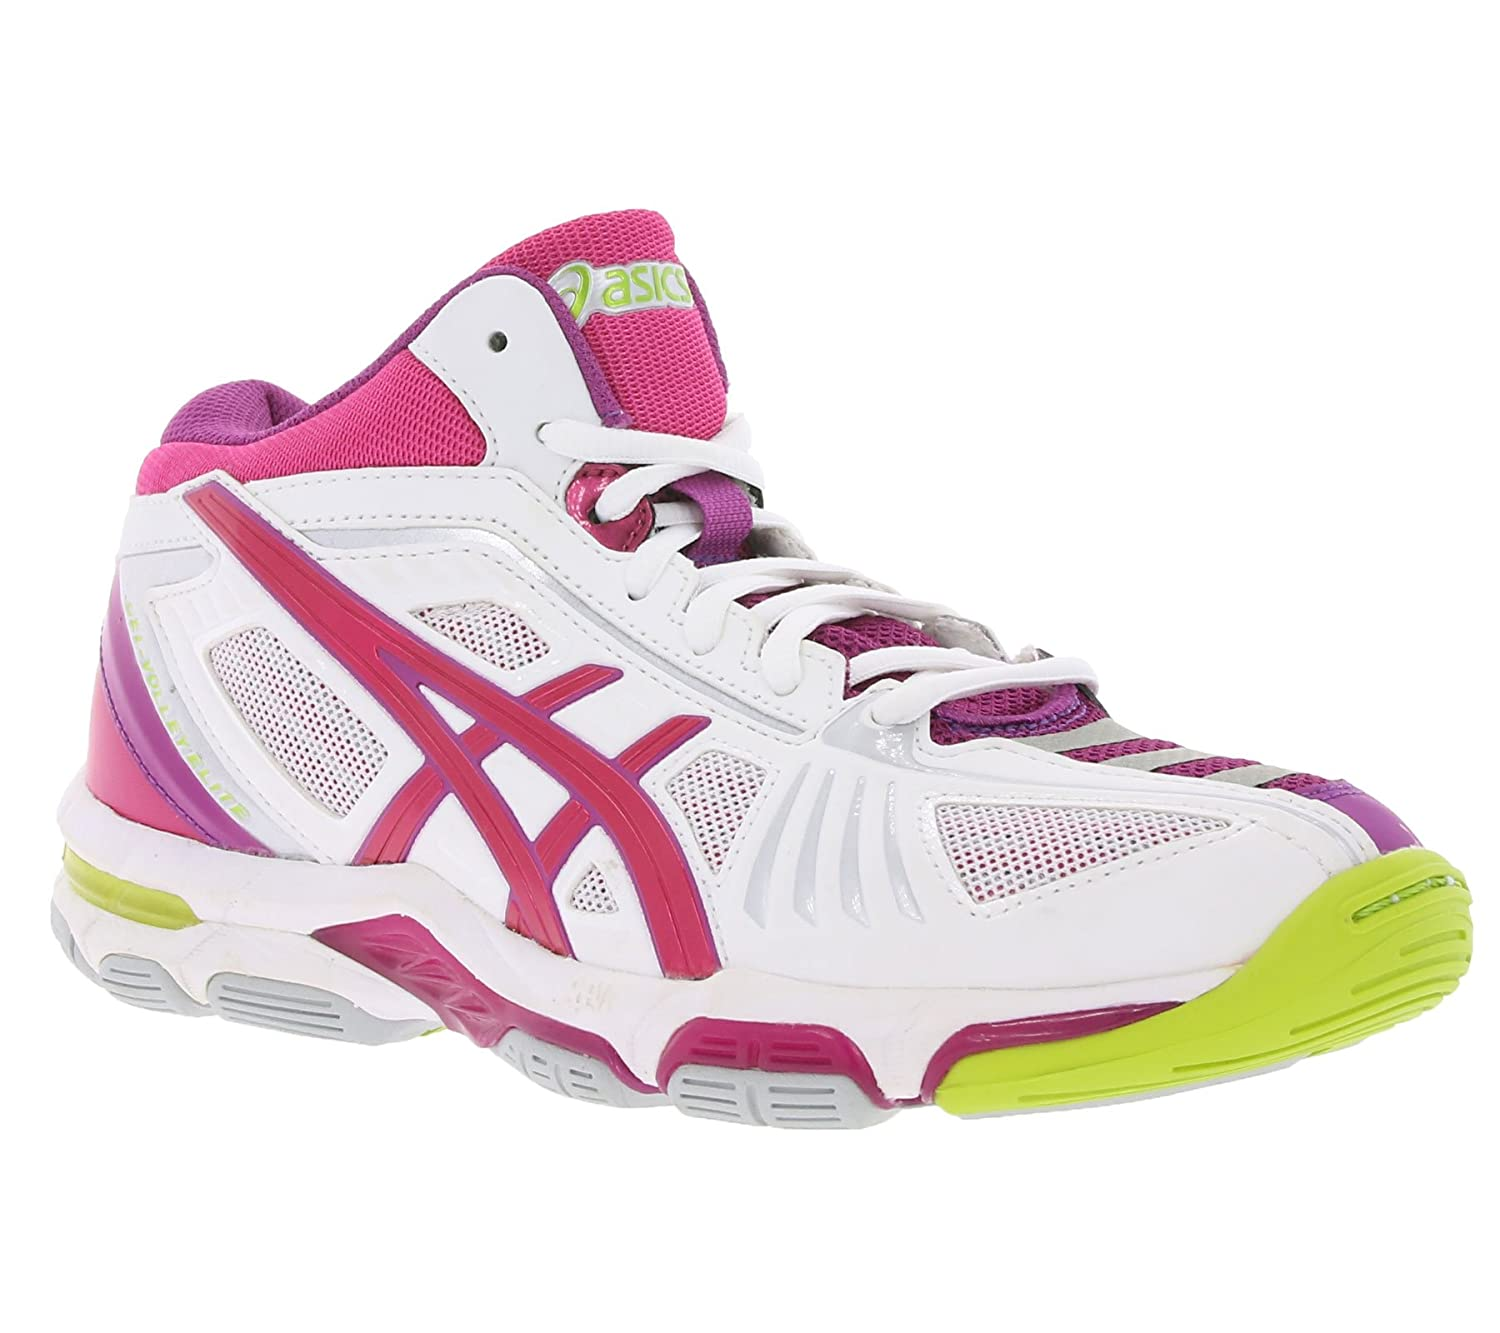 Asics Gel-Volley Elite 2 MT - Scarpe da pallavolo, Donna